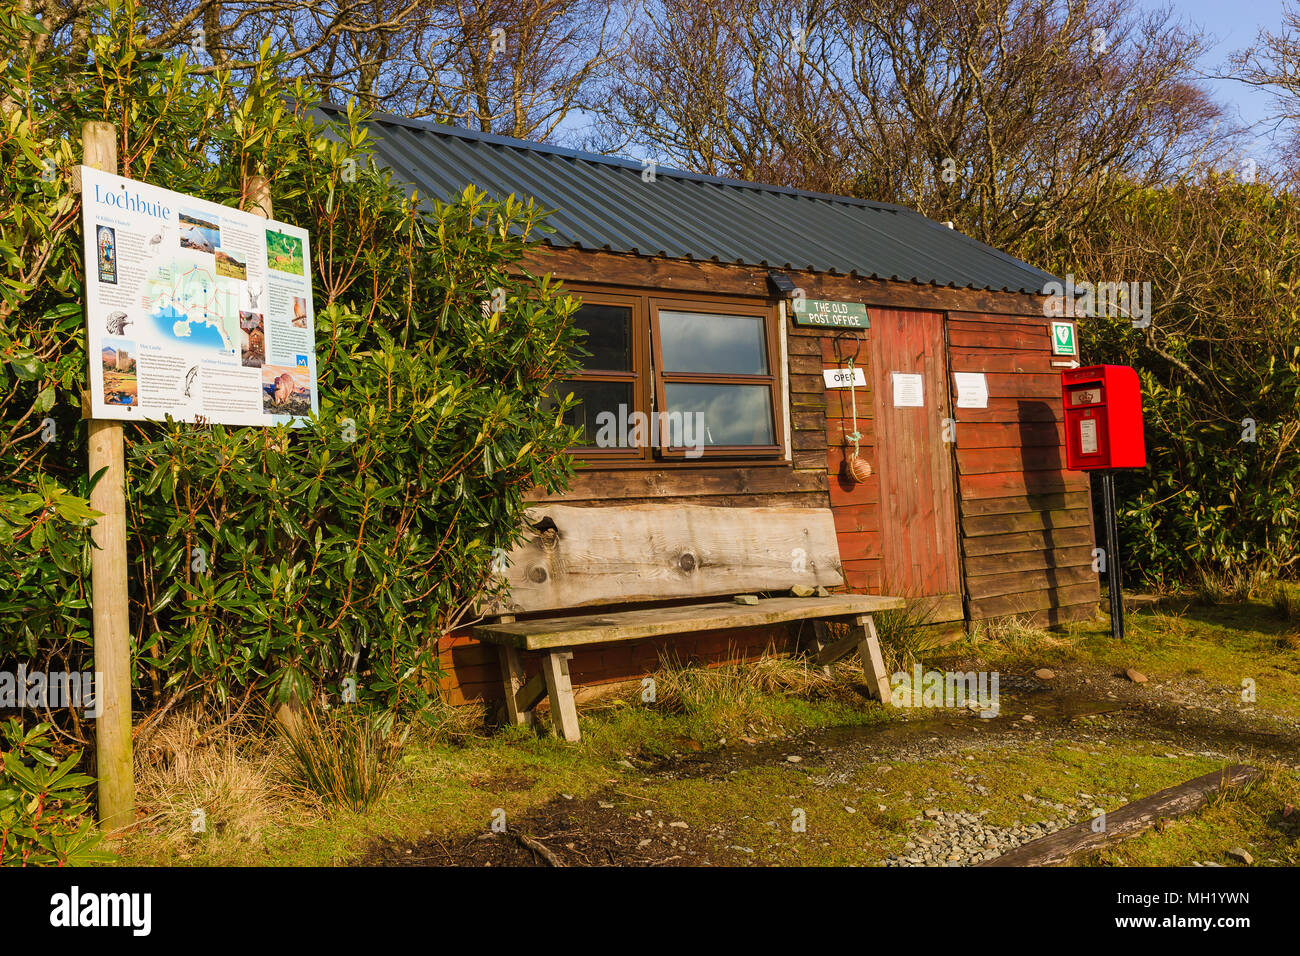 The Old Post Office, Lochbuie, Isle of Mull, Scotland, Inner Hebrides, UK - Stock Image